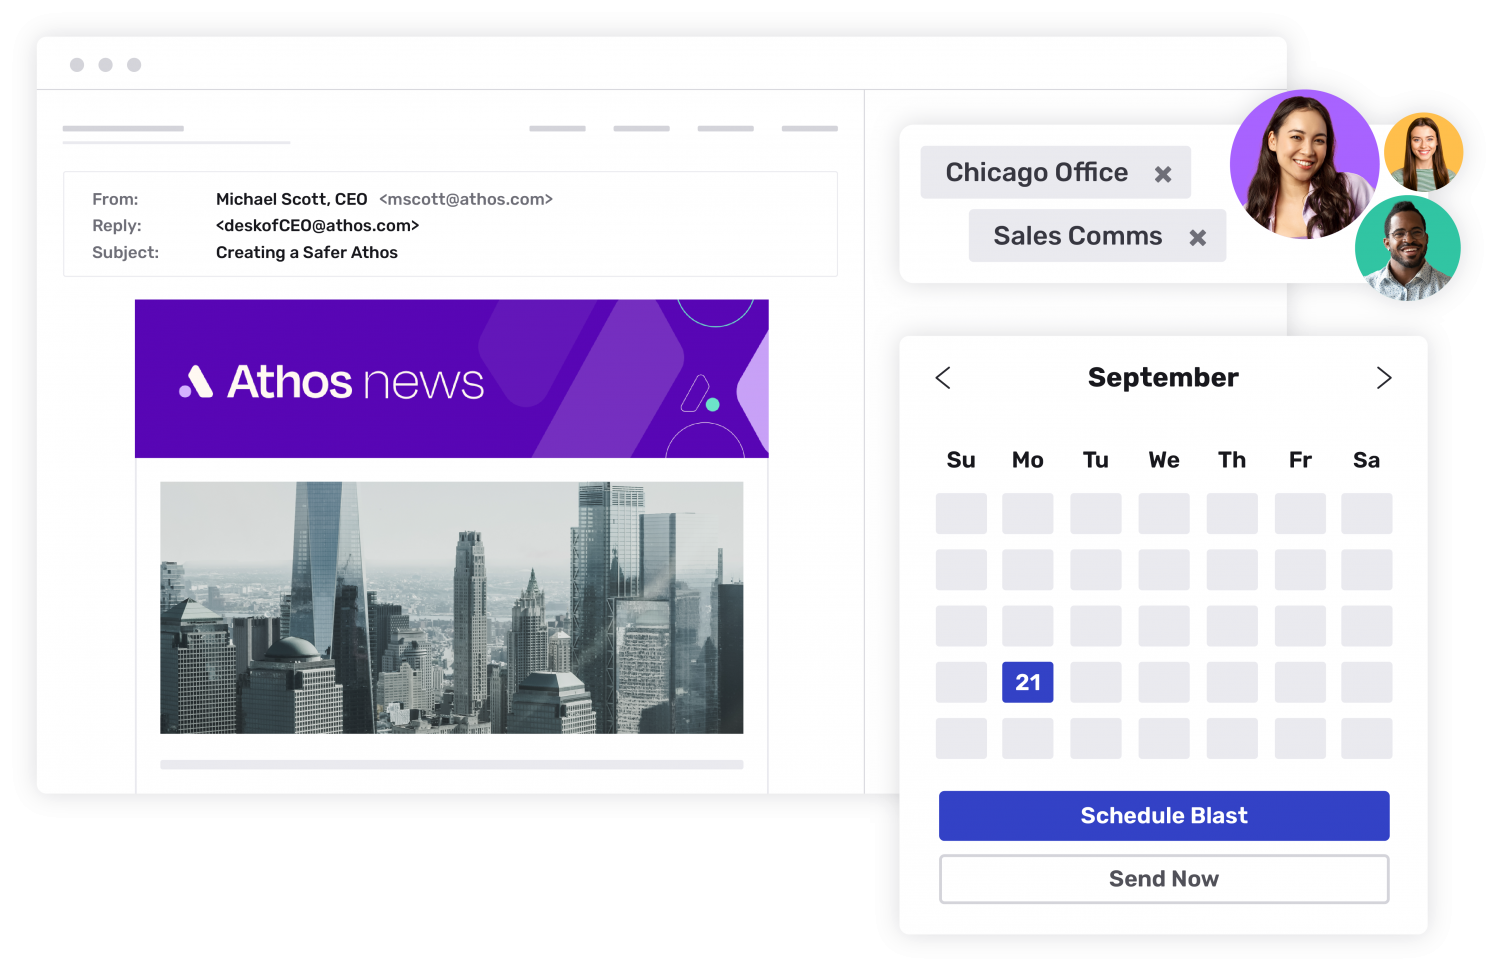 Athos corporate news email is being scheduled for the Chicago and Sales Communications segments